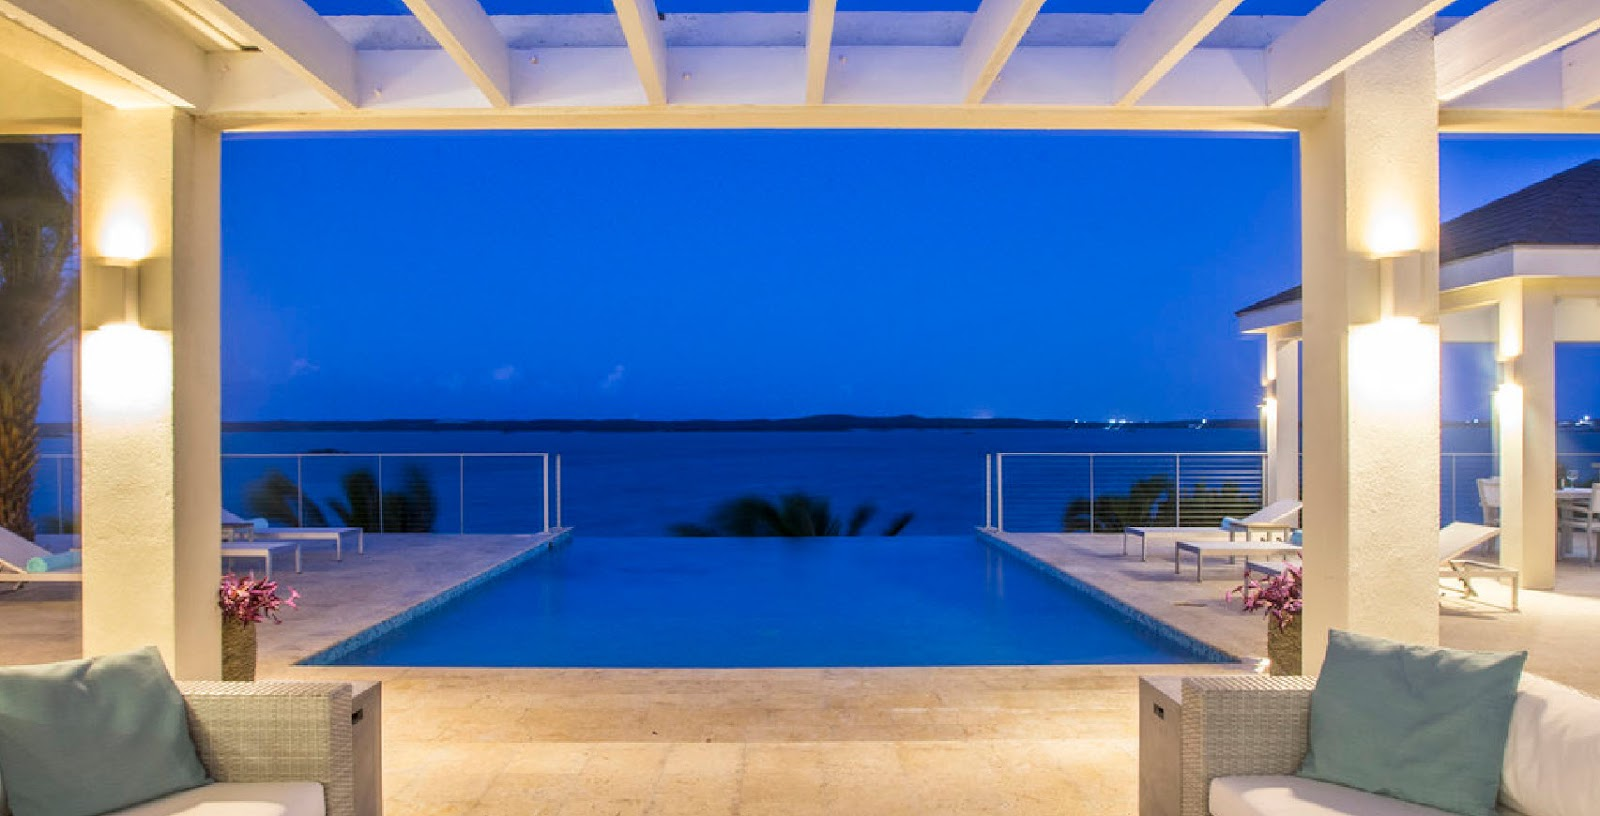 Infinity-edge pool with cable railings and ocean view